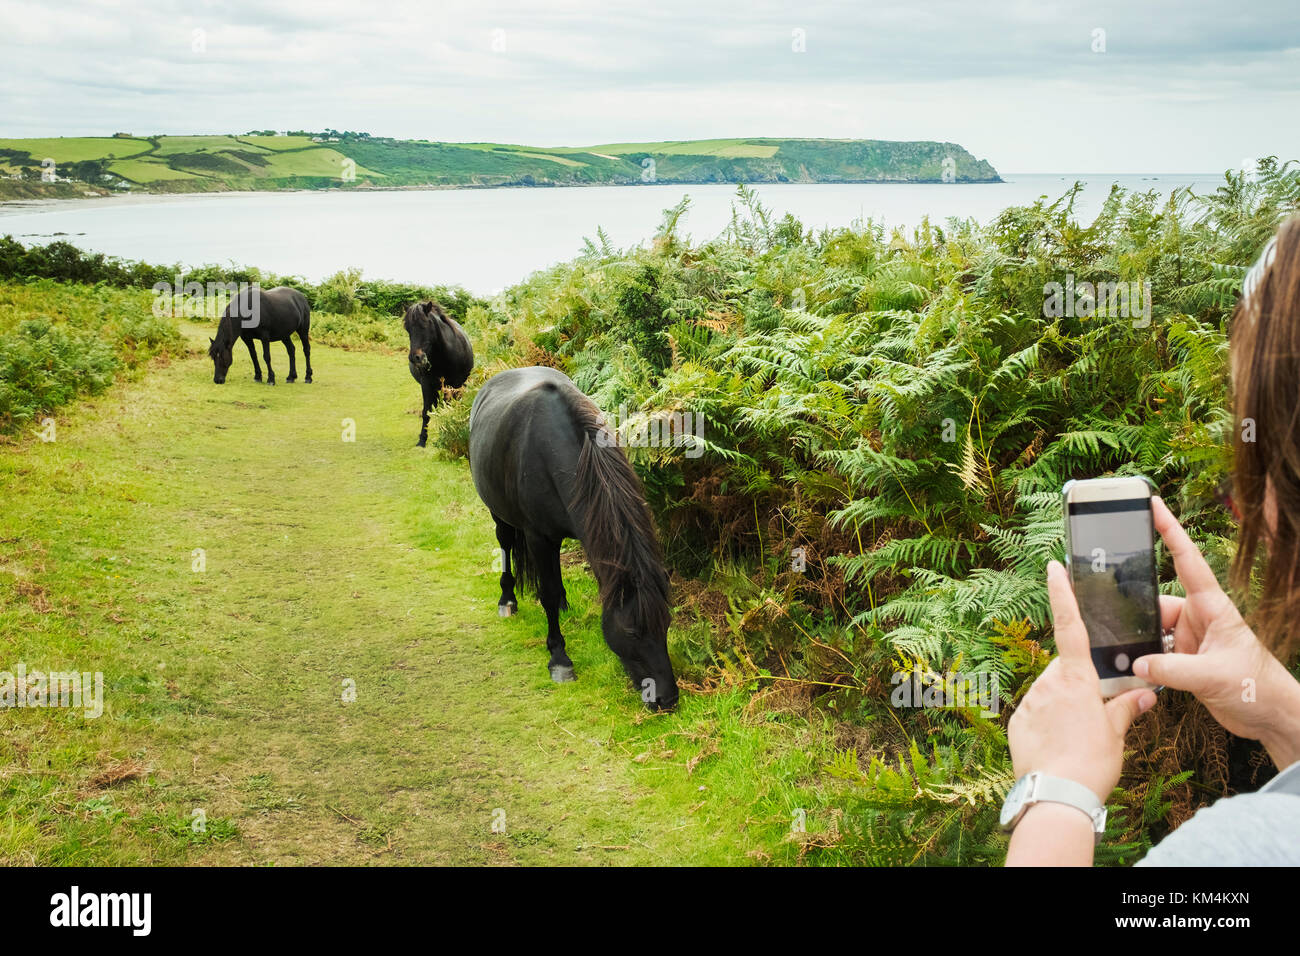 A woman taking a photograph of three wild ponies on a path grazing on bracken, on the coast. - Stock Image